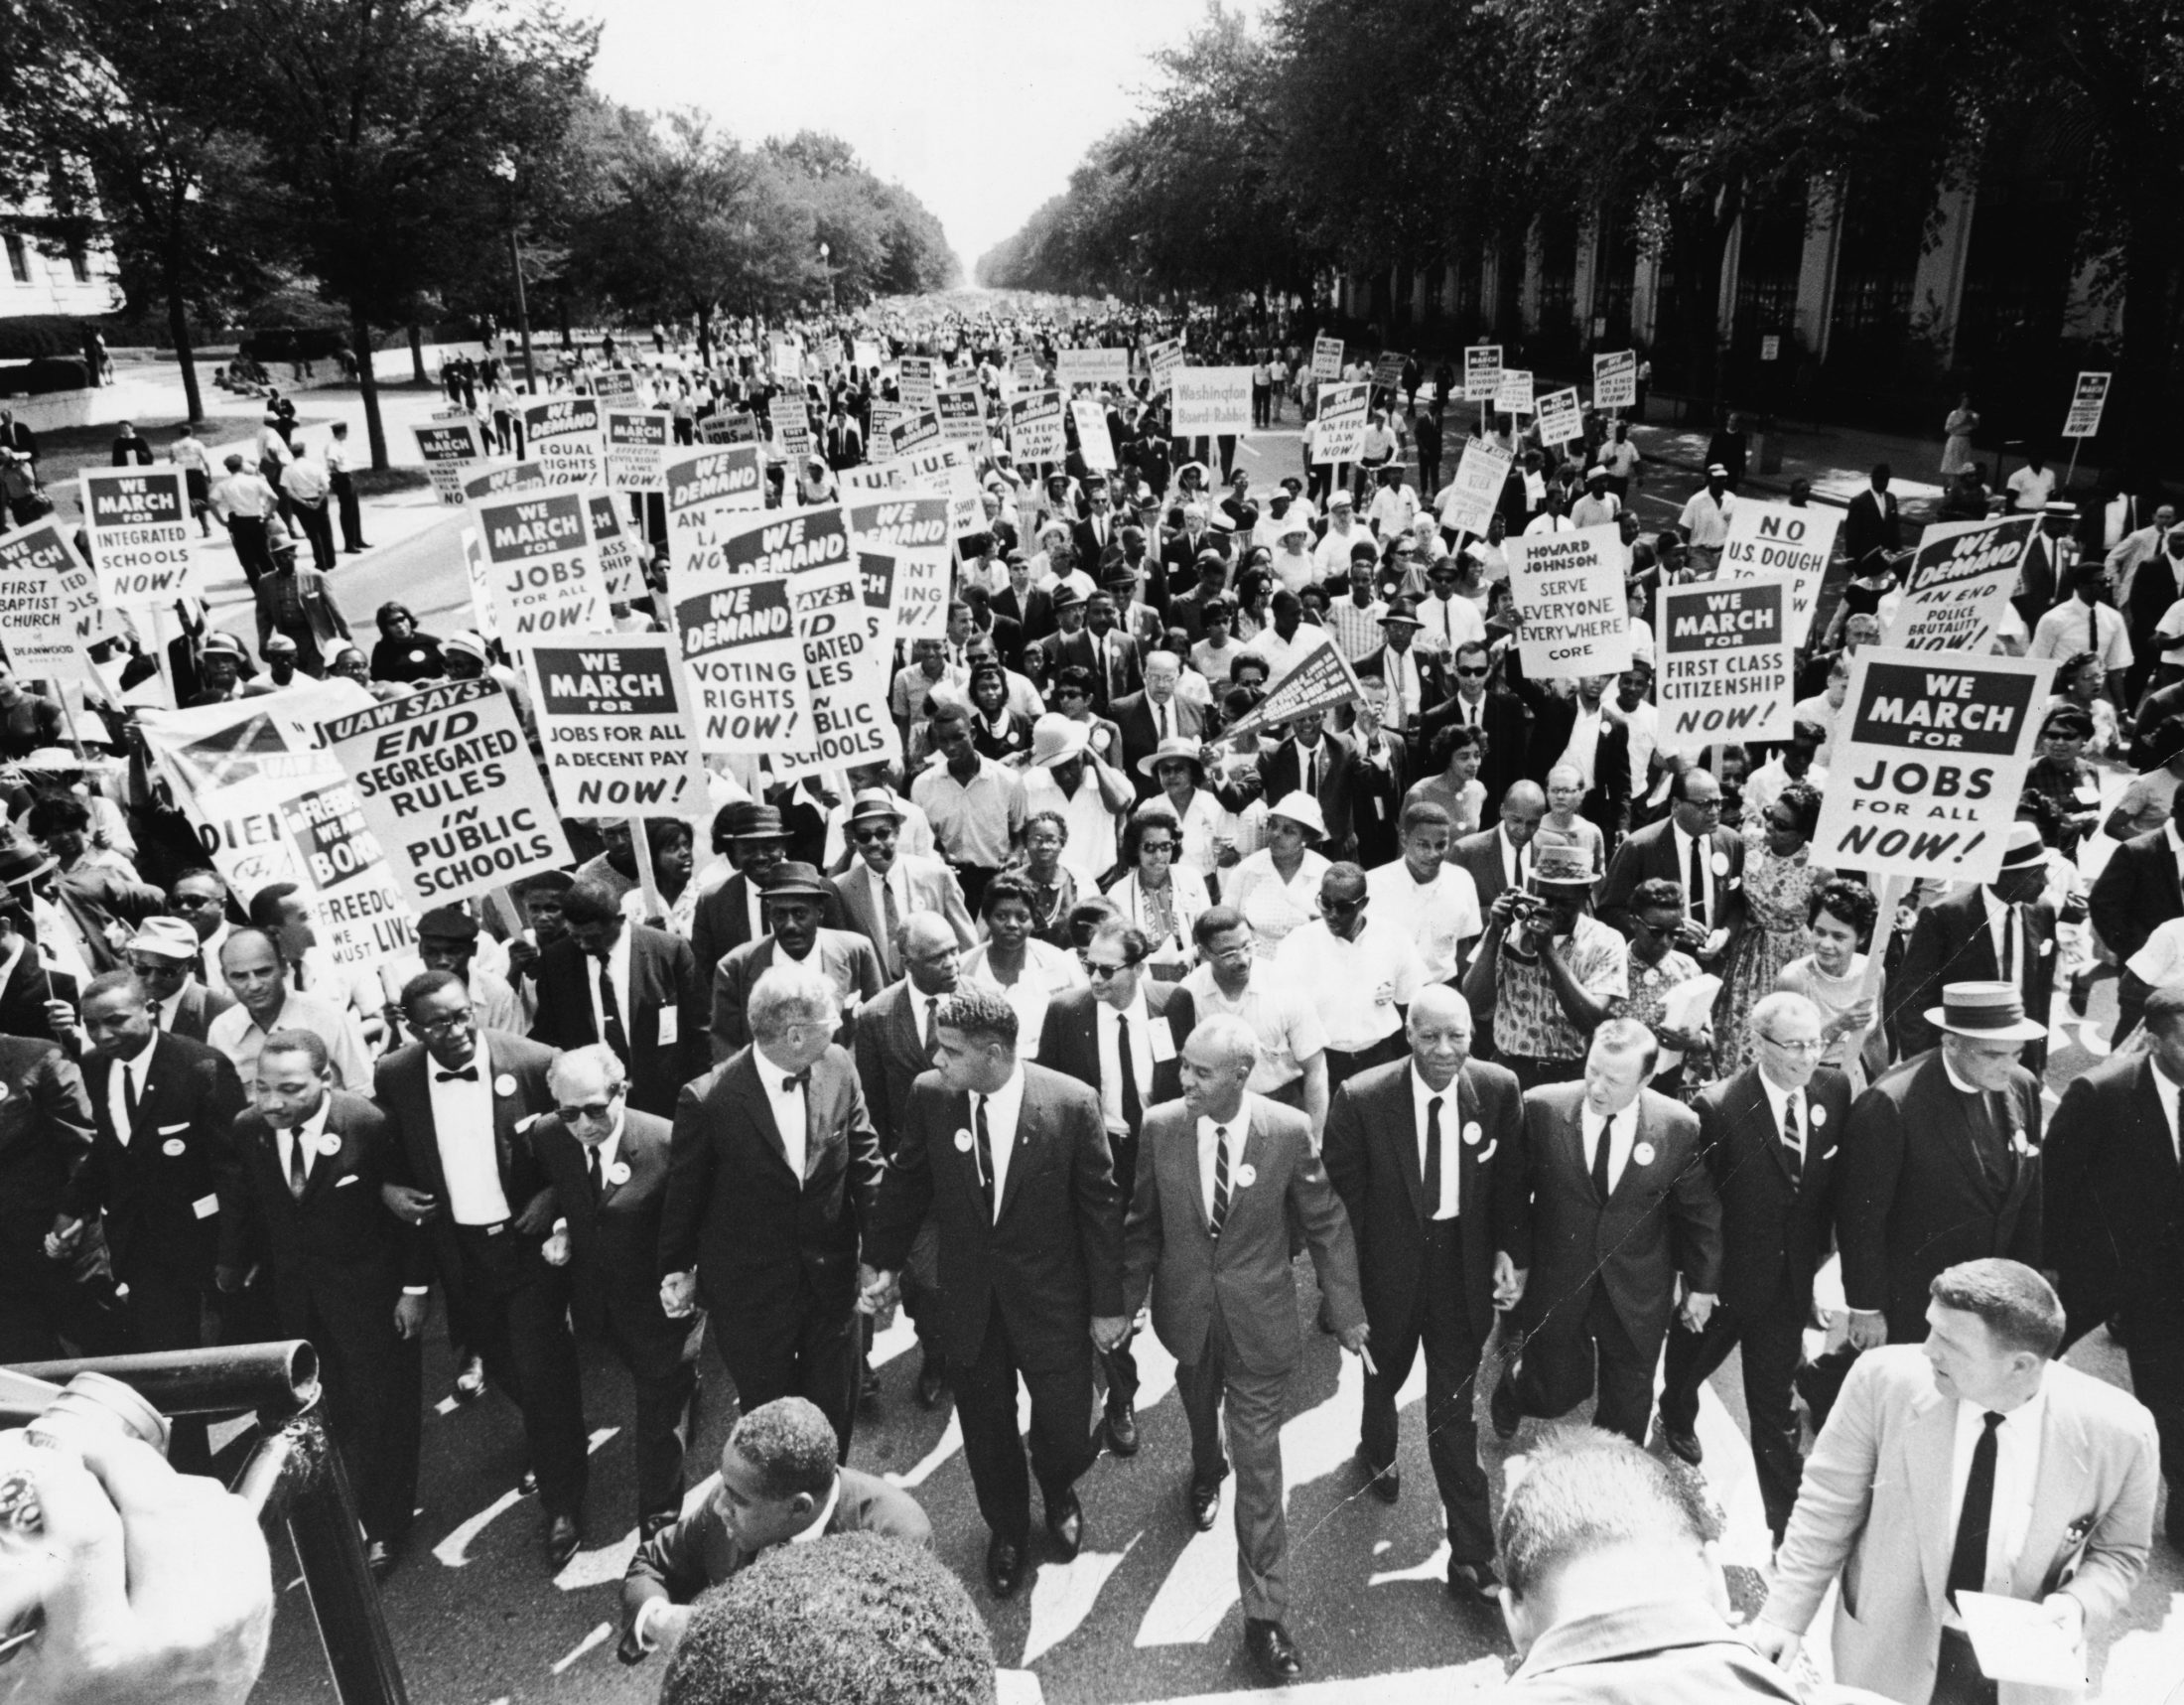 Civil rights Leaders hold hands as they lead a crowd of hundreds of thousands at the March on Washington in 1963. Those in attendance include (front row): James Meredith and Martin Luther King, Jr., left; (L-R) Roy Wilkins, A. Phillip Randolph and Walther Reuther. Photo by Hulton Archive/Getty Images